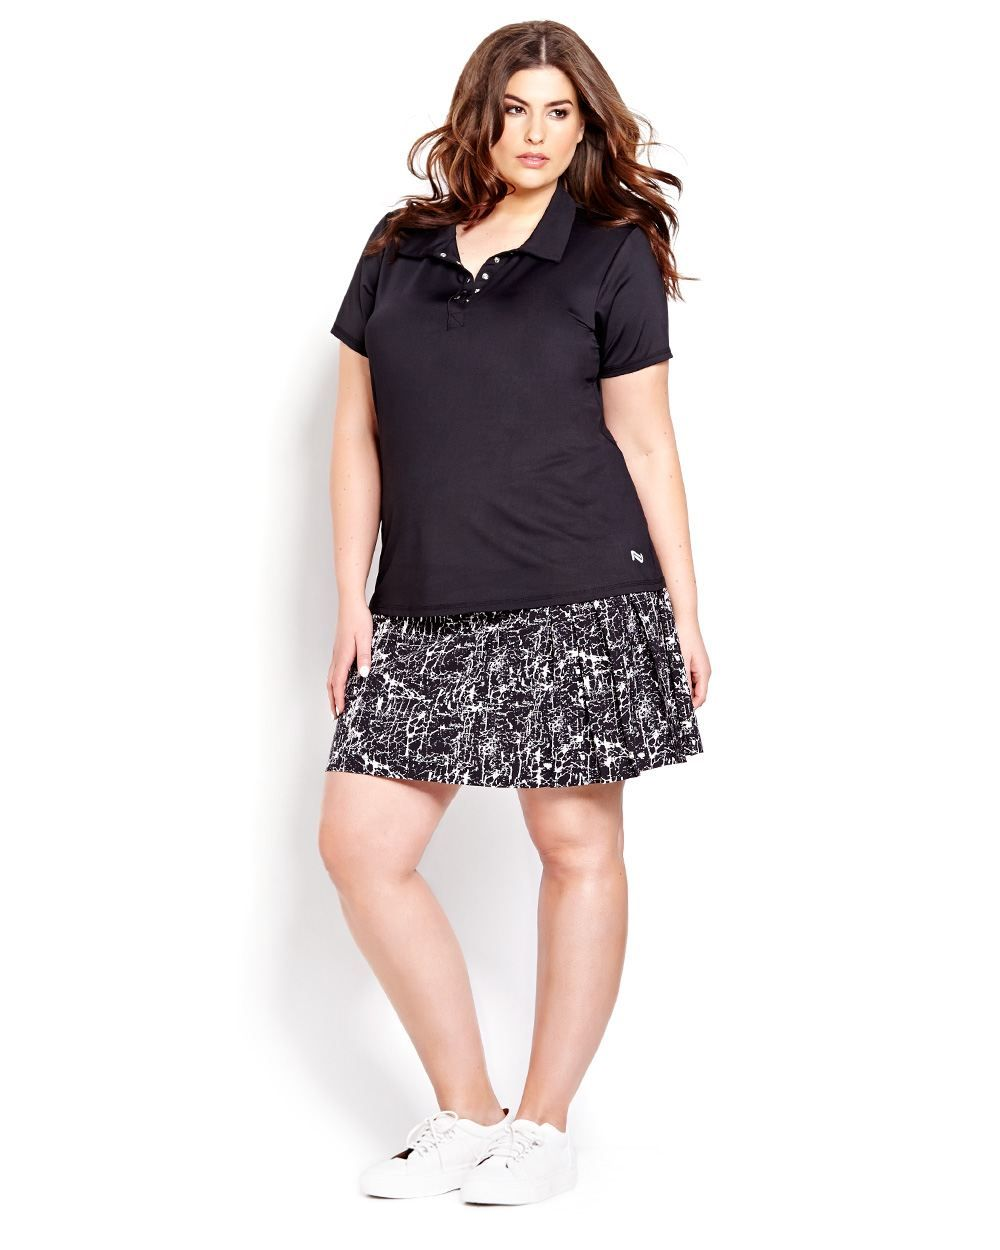 Nola Golf Pleated Printed Skort And Polo 95 For The Outfit